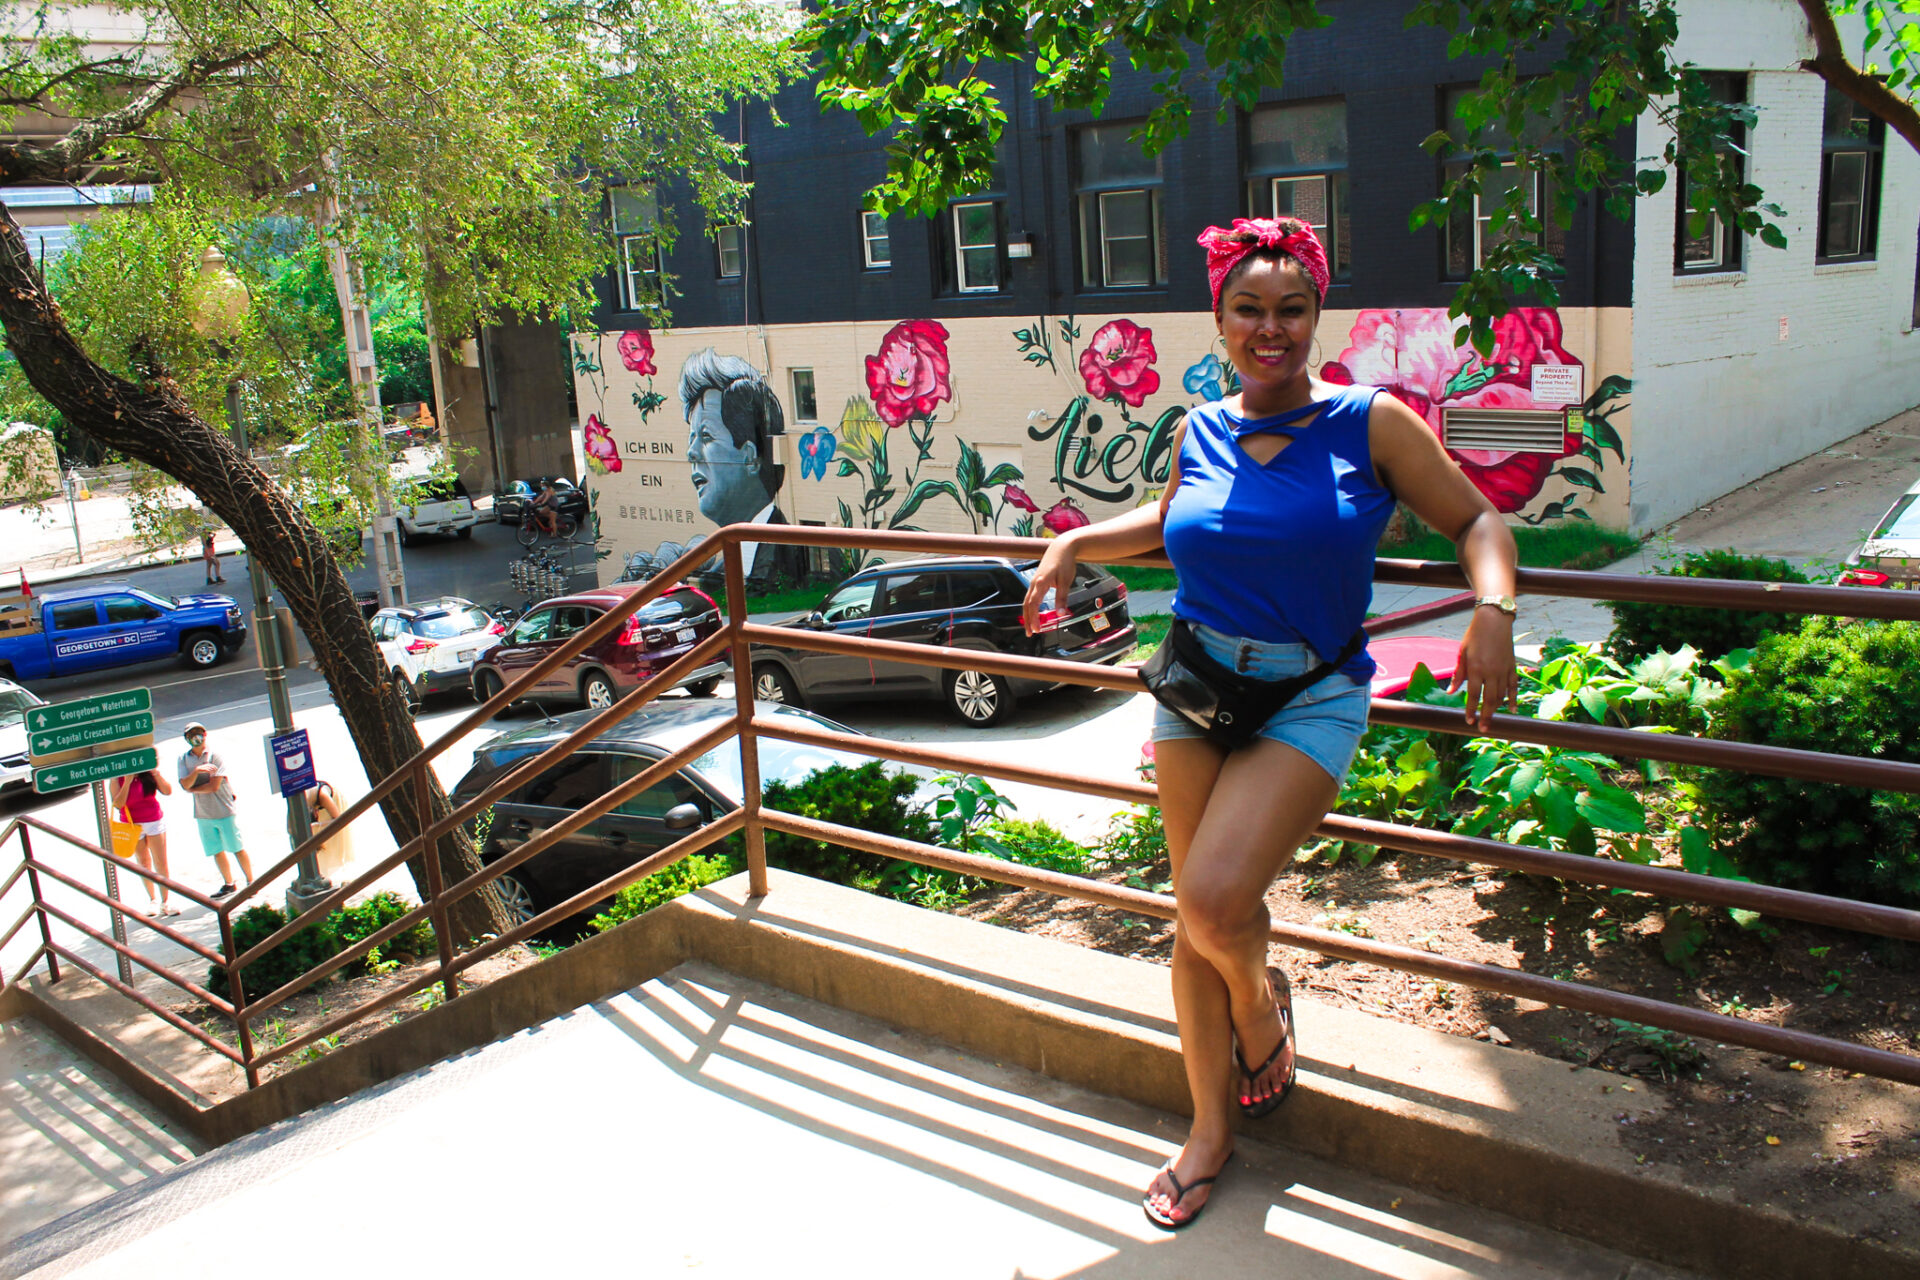 This Bahamian Gyal blogger, Rogan Smith poses in front of JFK's Ice bine in Berliner mural in Georgetown.